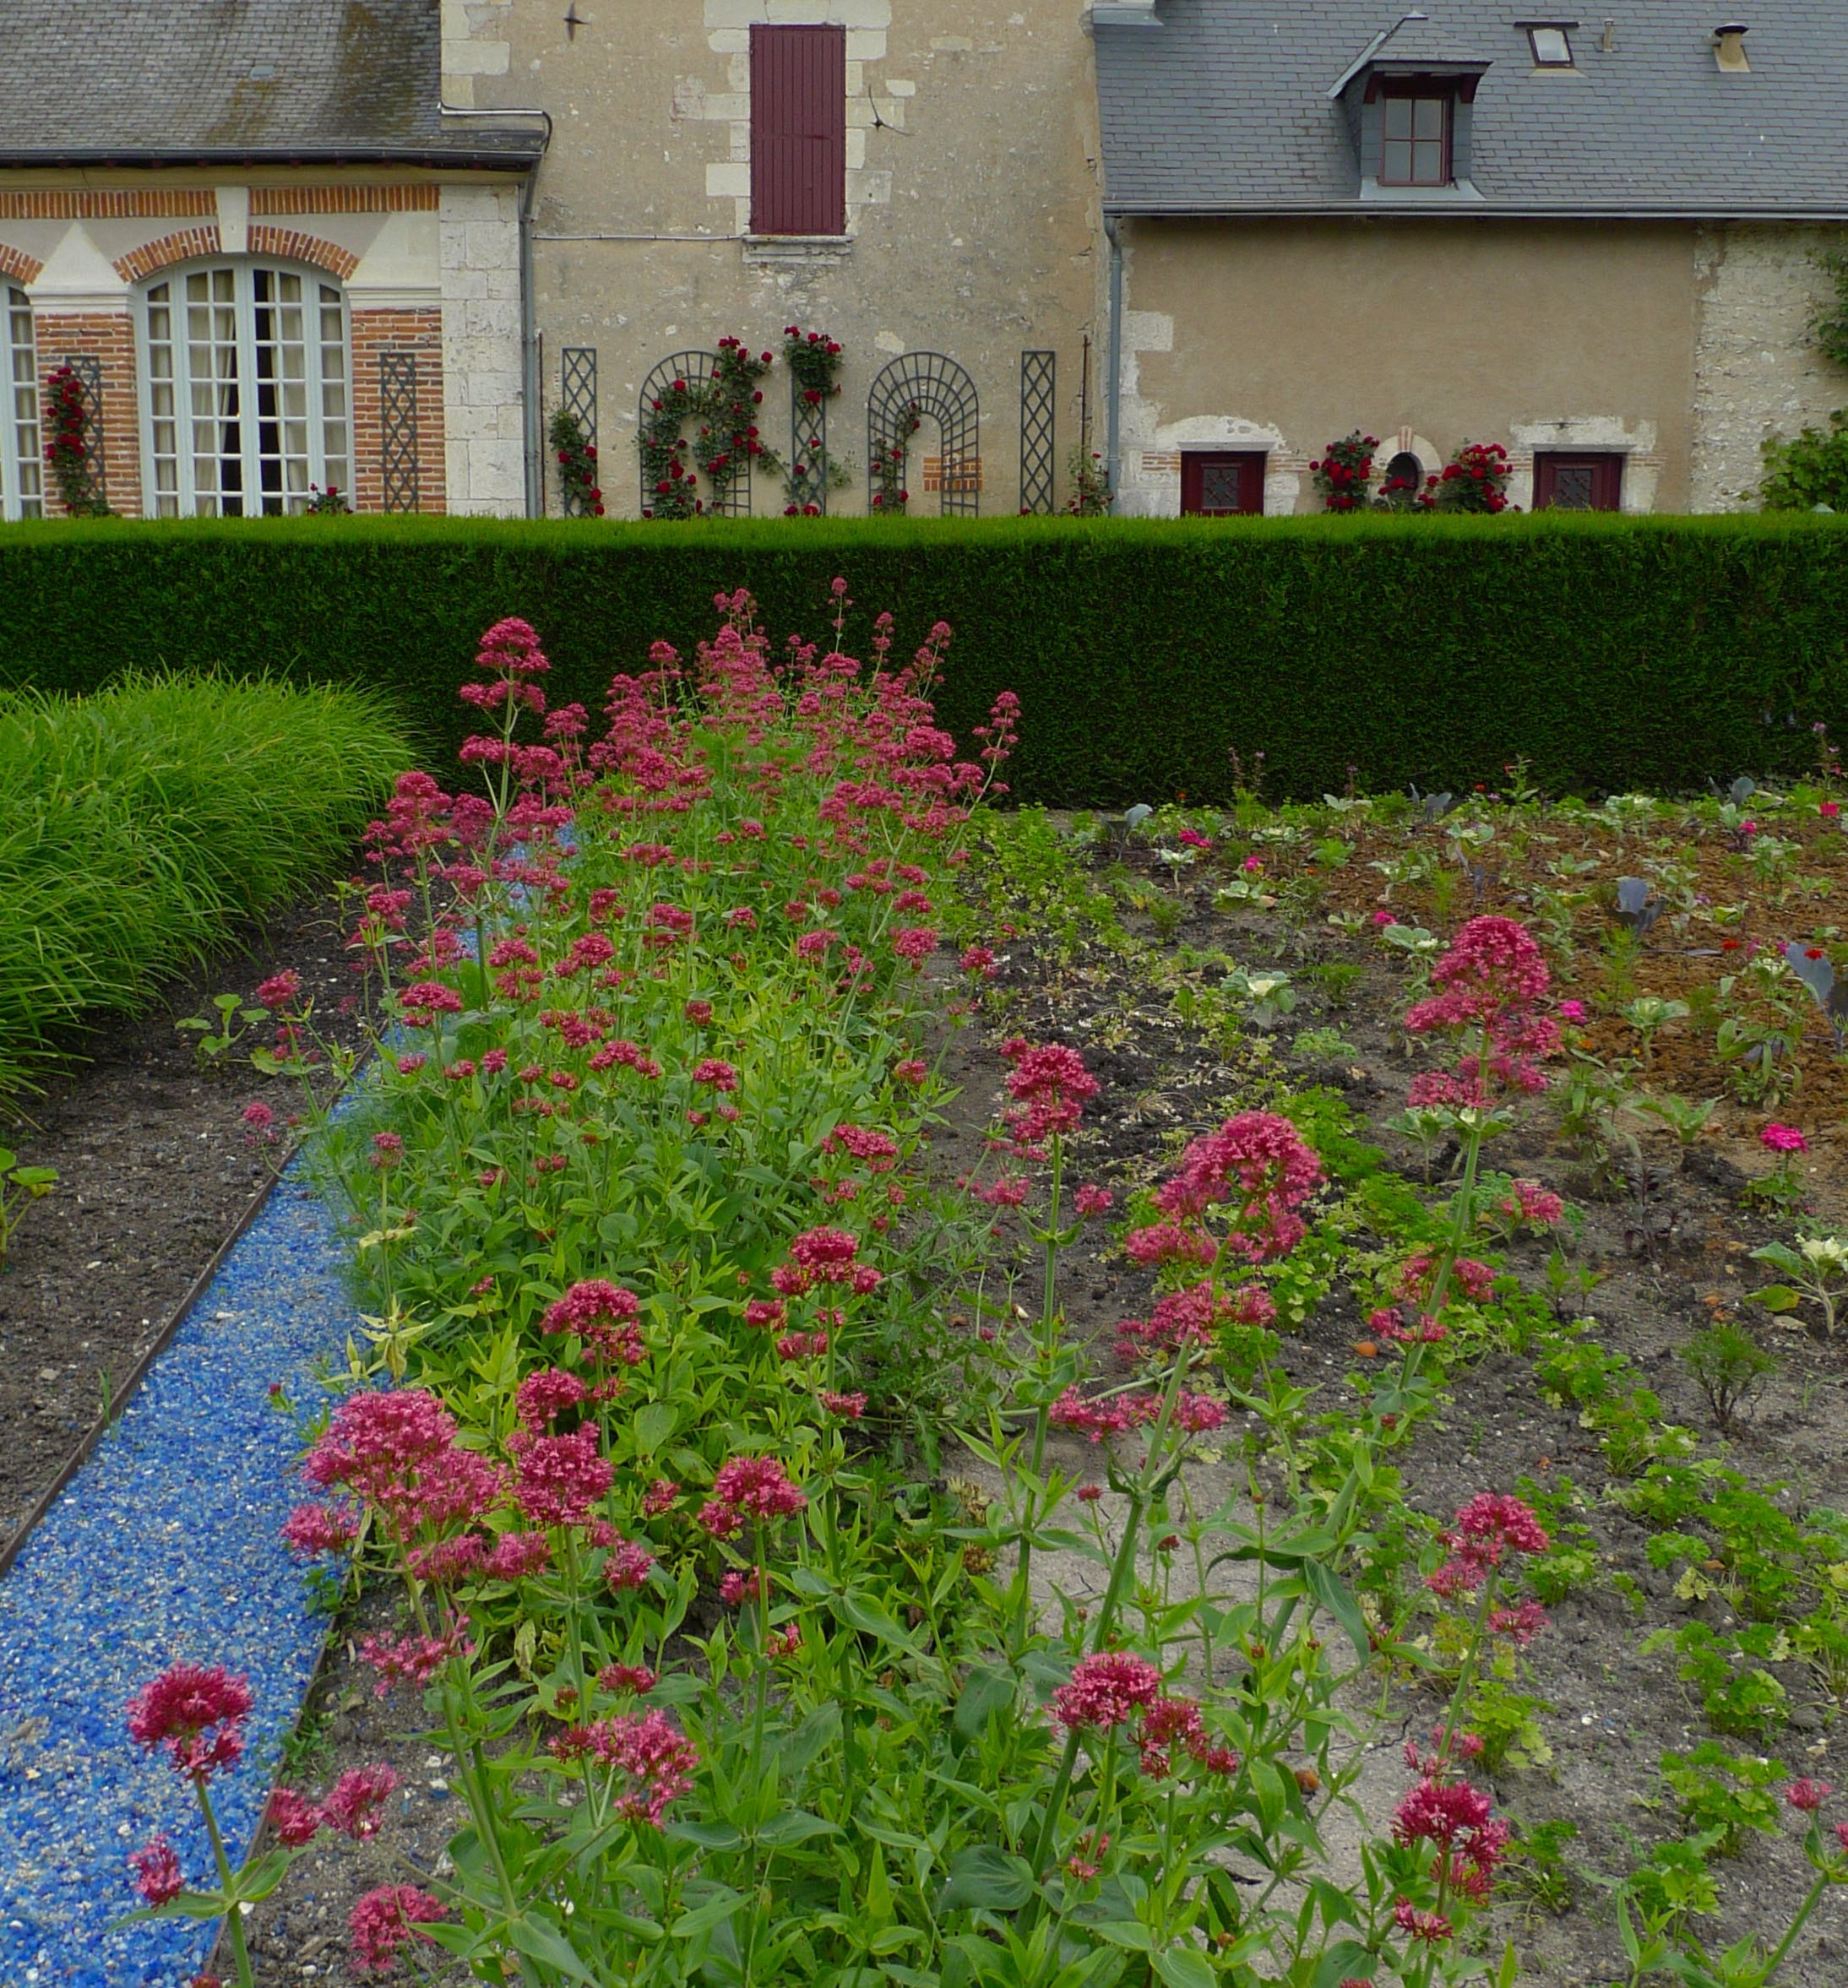 A row of valerian added even more pink to the garden